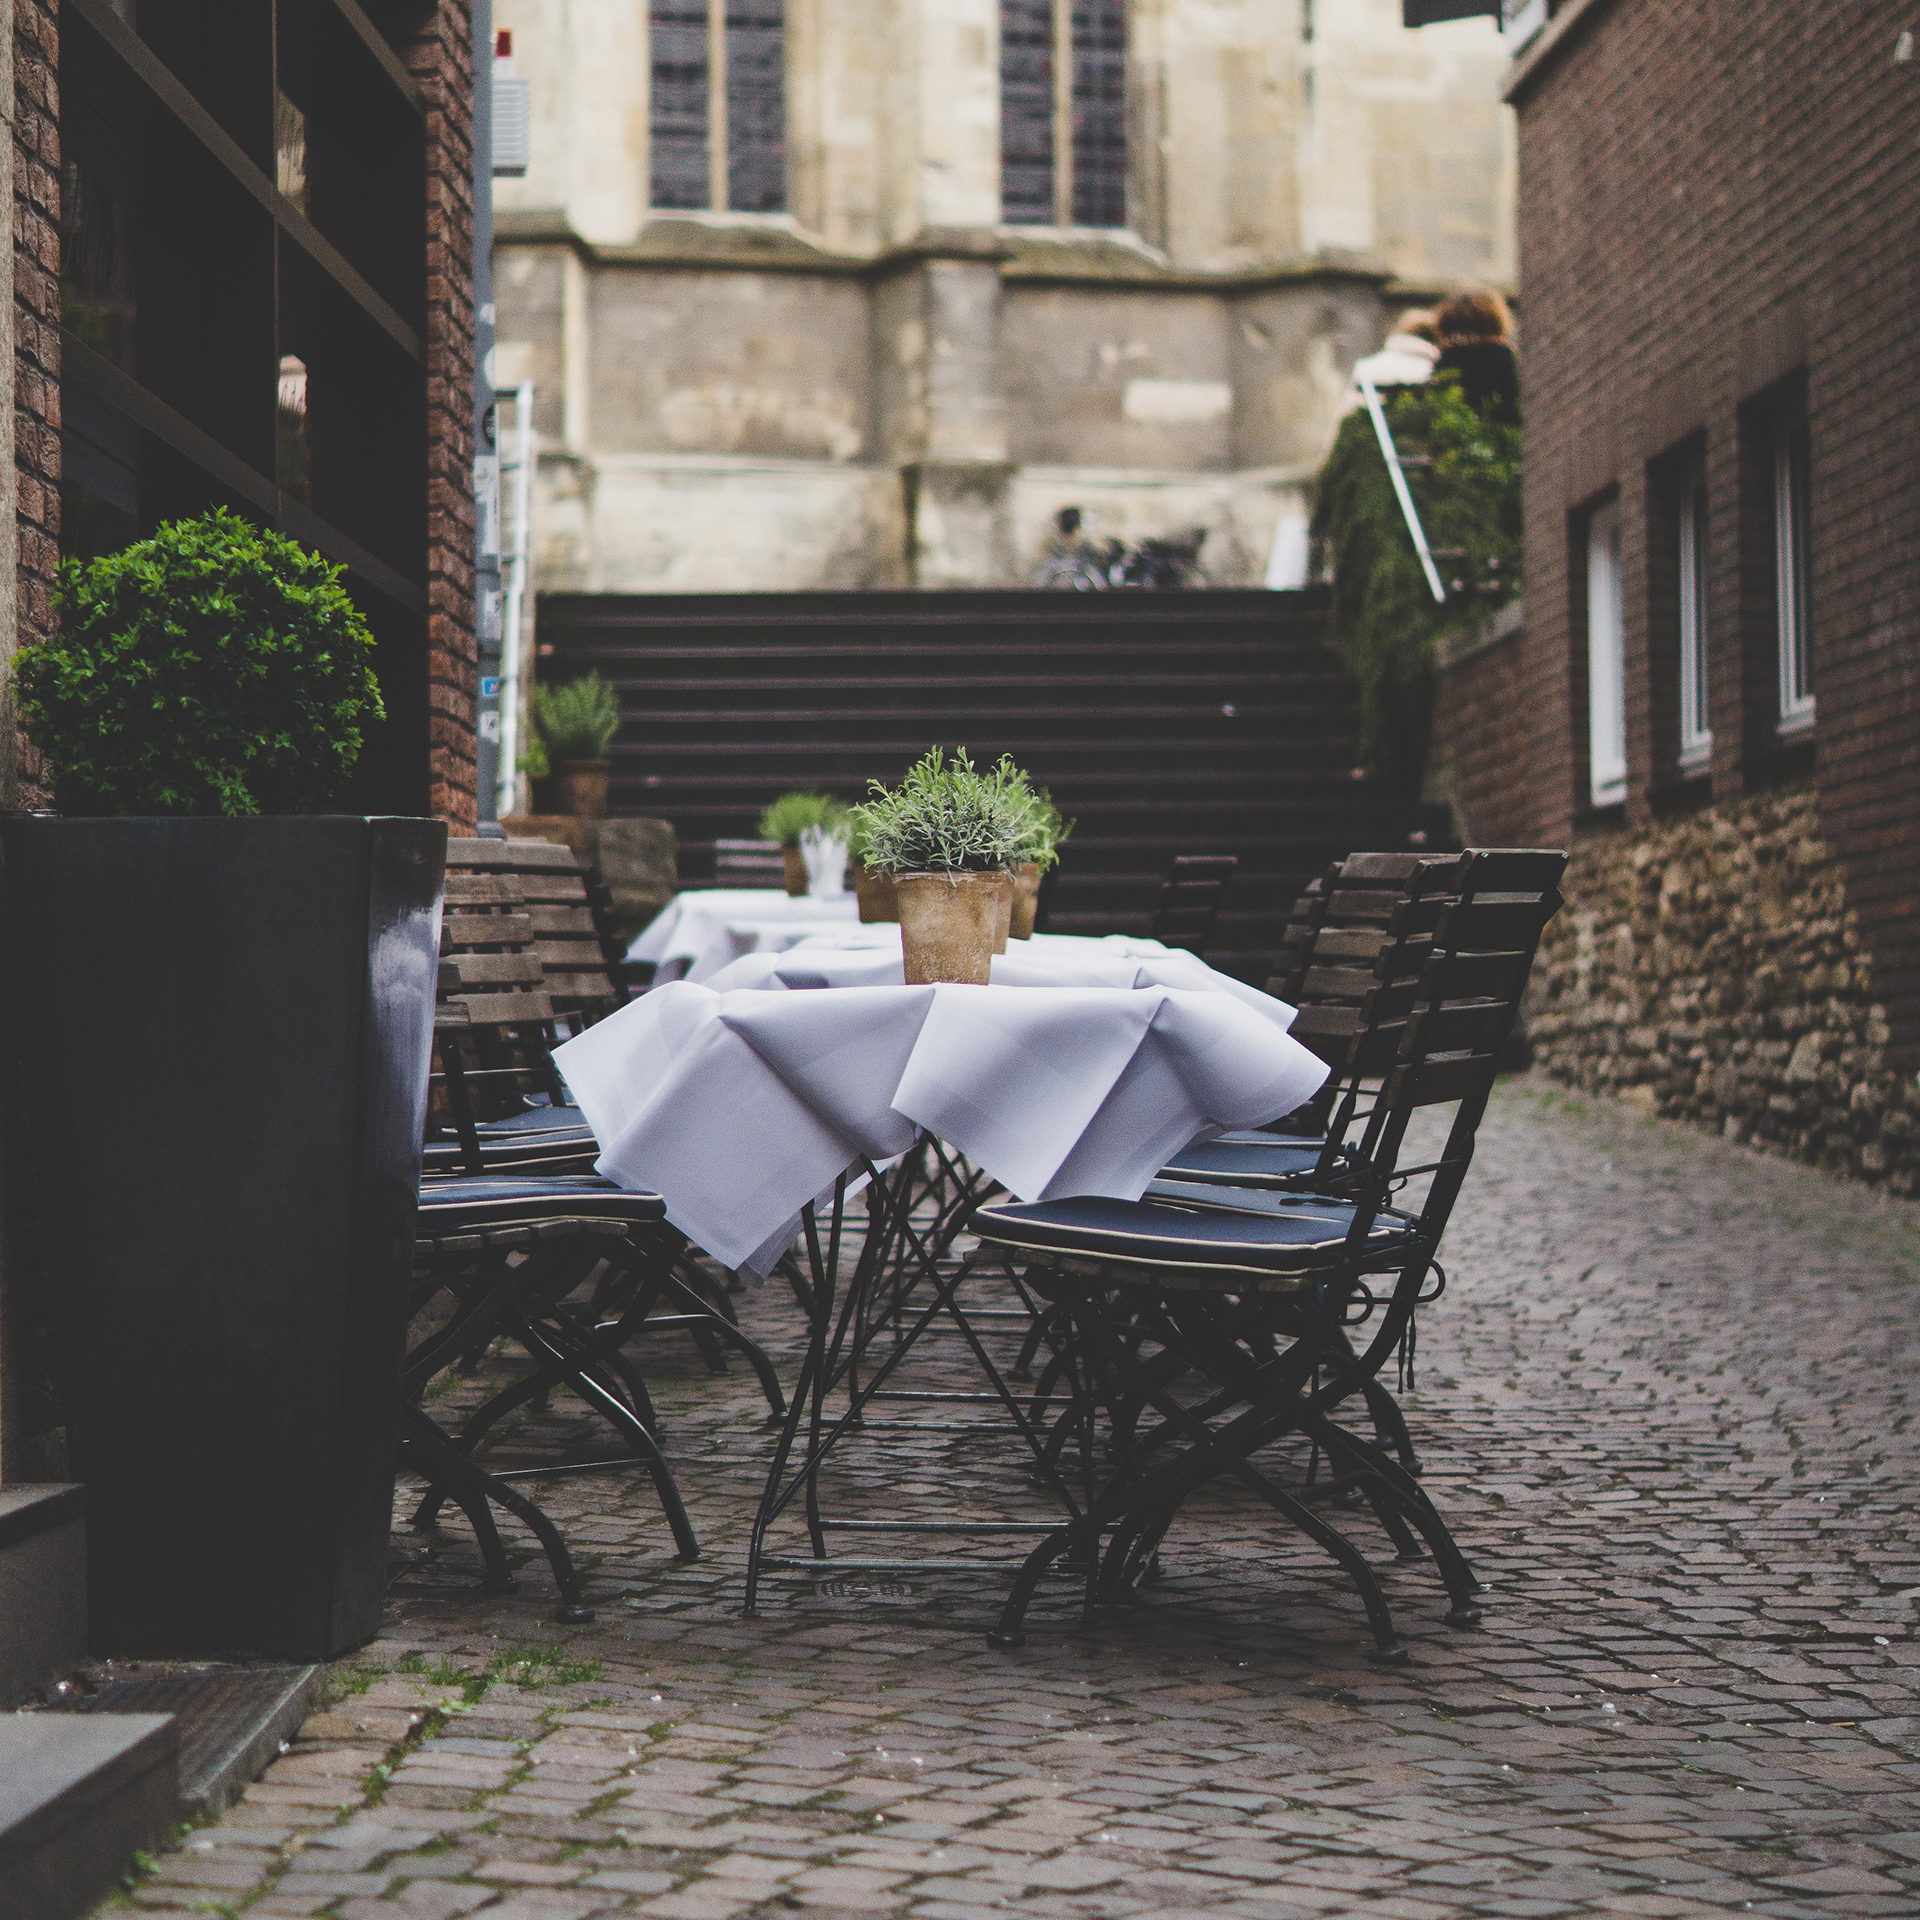 lovely place to eat + drink outside on the street